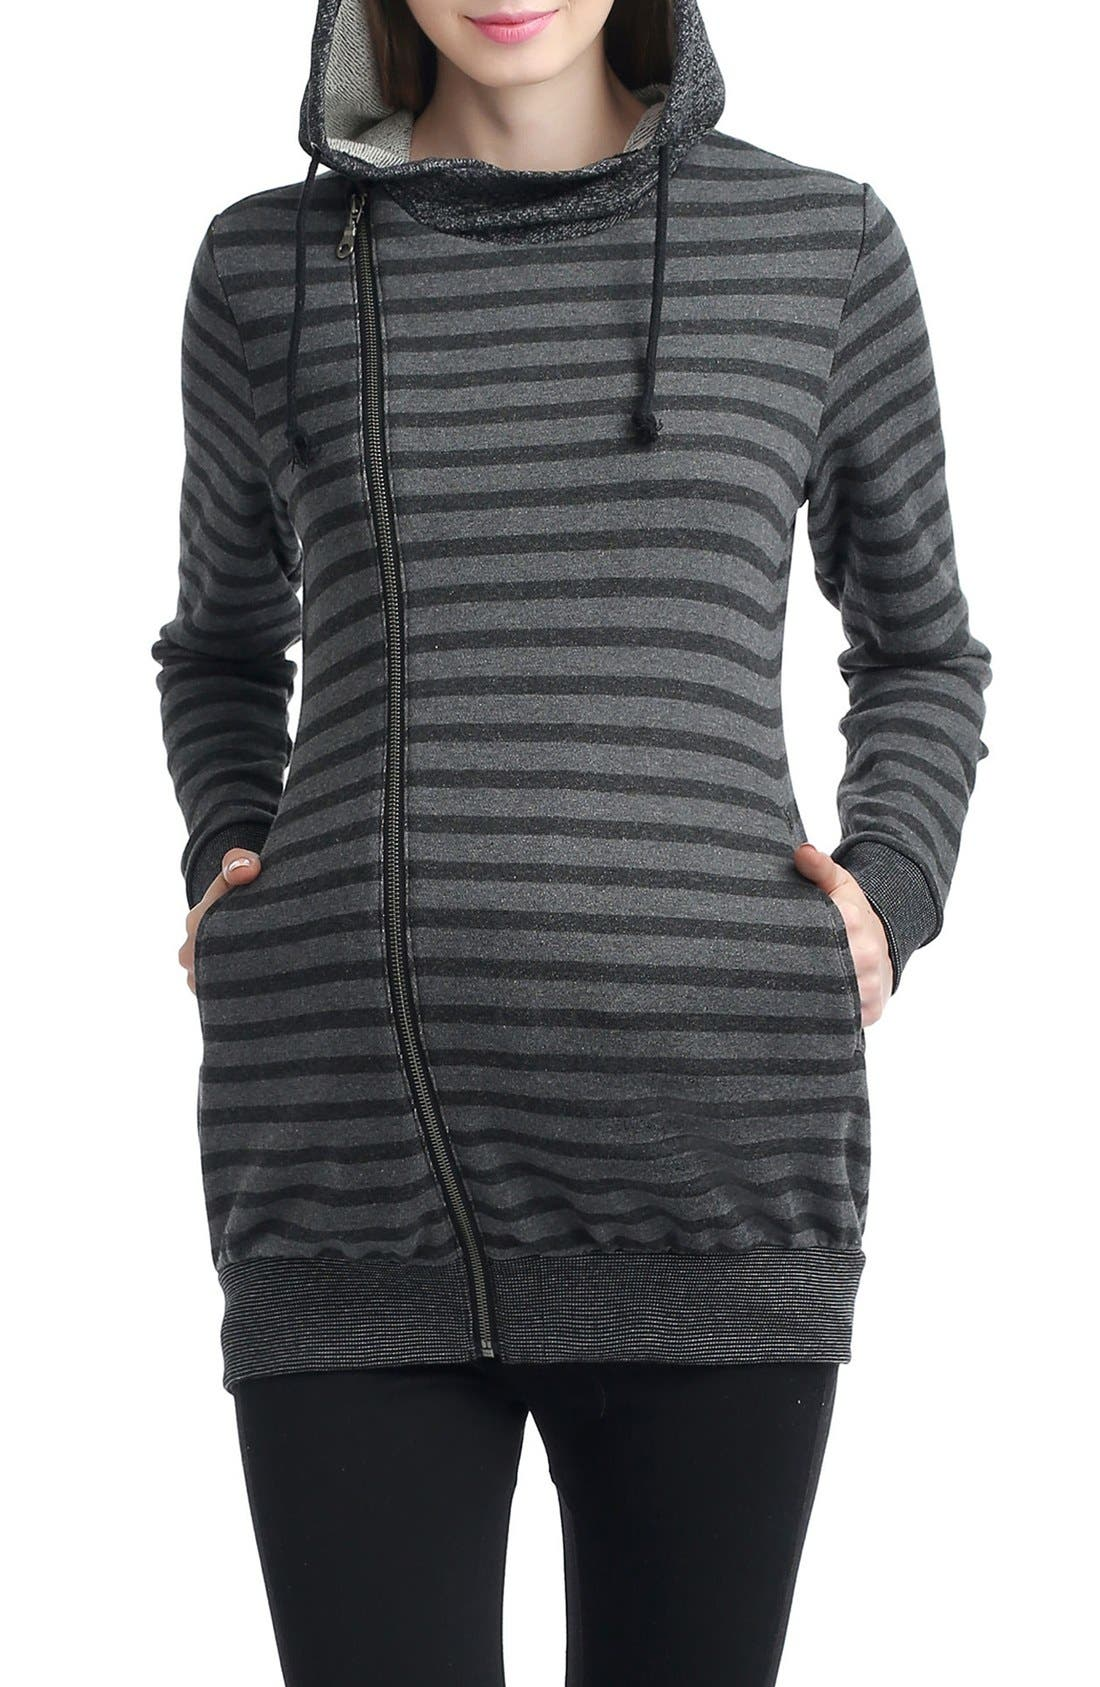 Salena Stripe Maternity Hoodie,                         Main,                         color, Black/ Dark Heather Gray